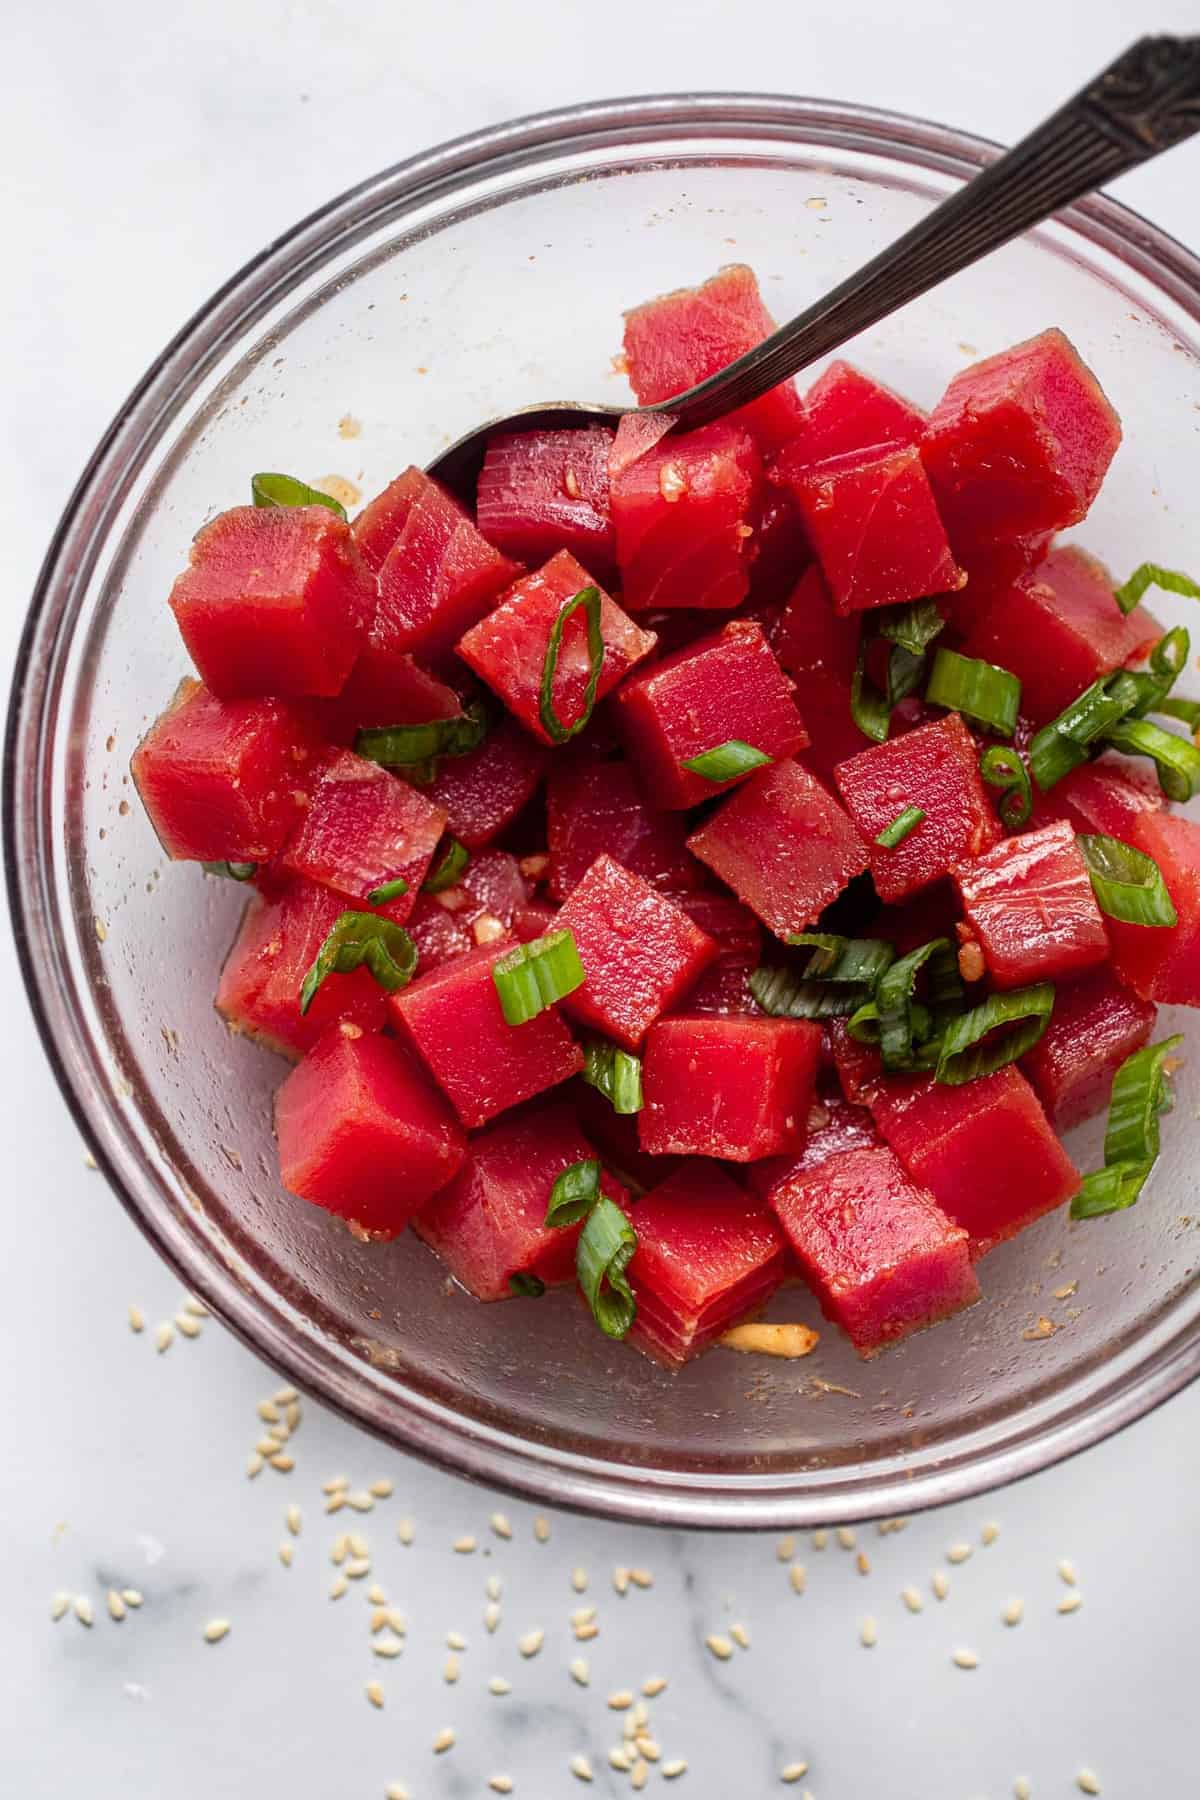 cubed ahi tune marinating in a bowl for low carb poke bowl